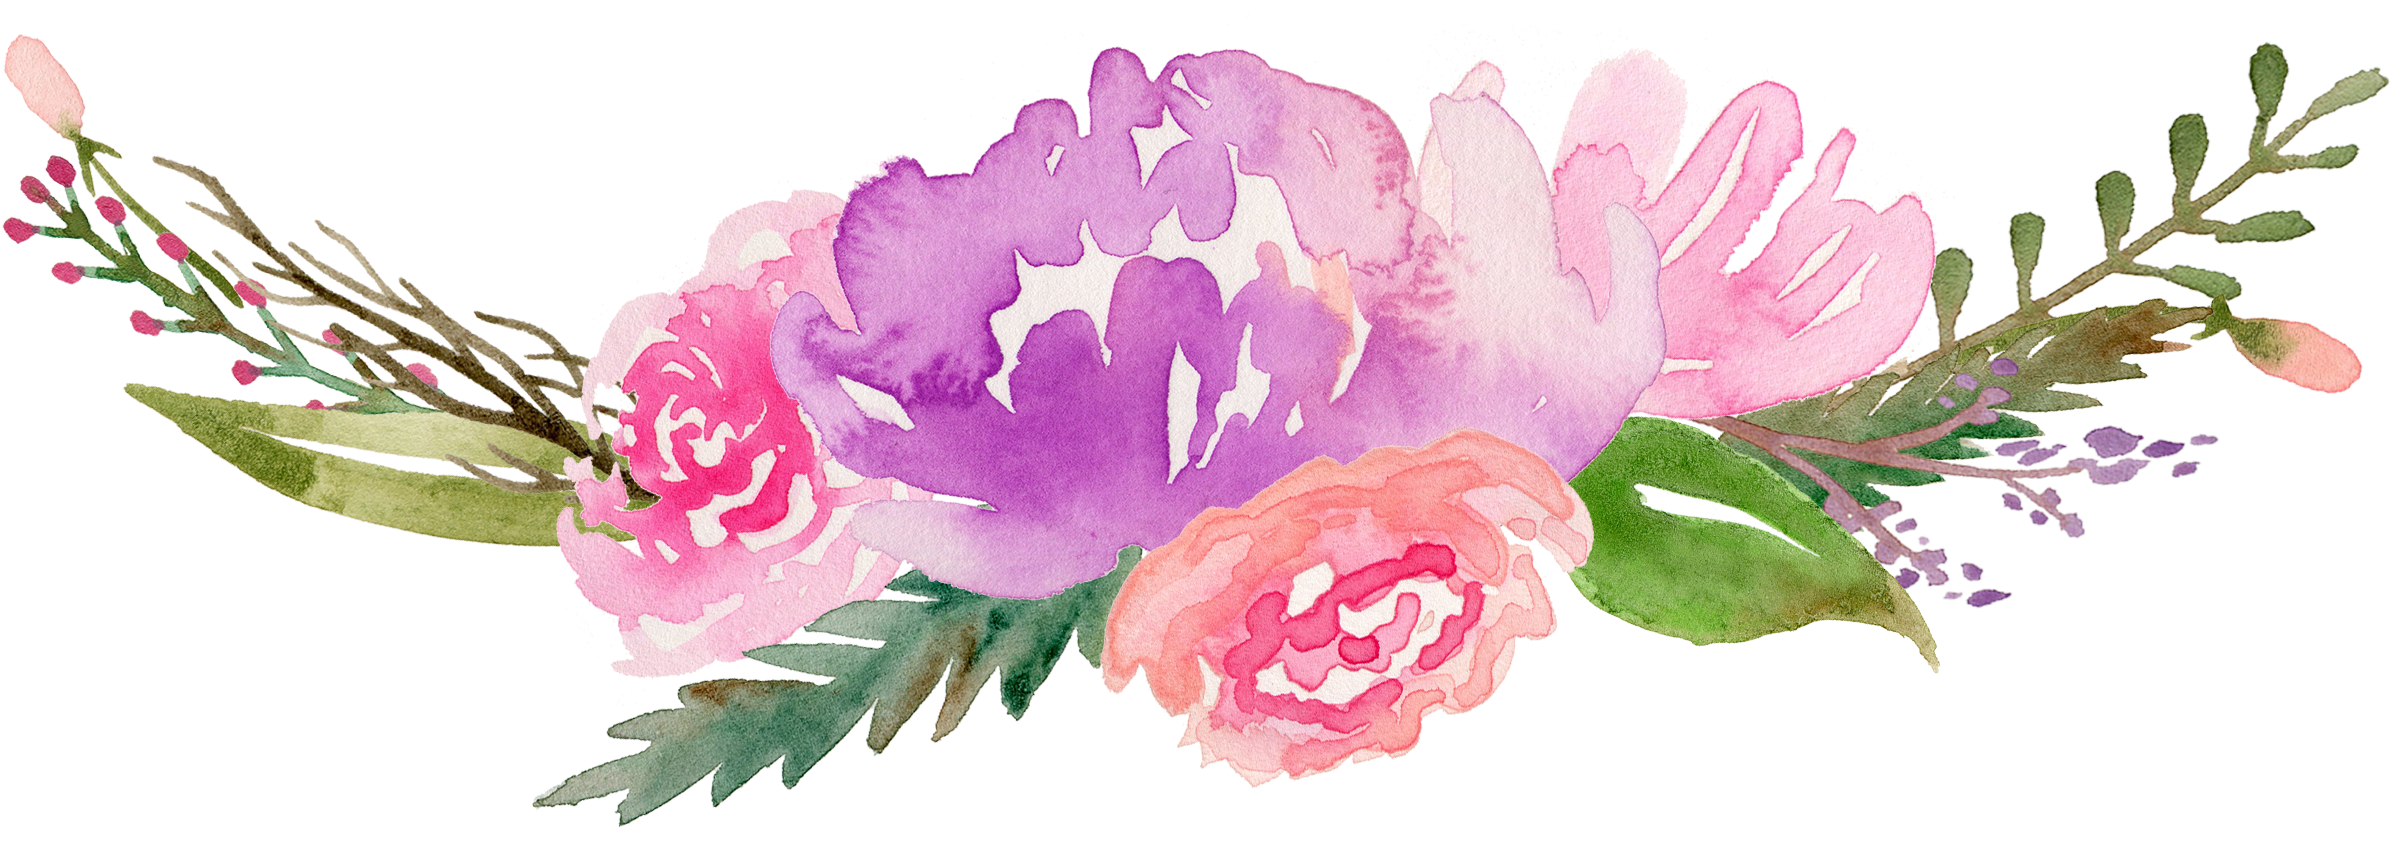 HD Royalty Free Flowers Watercolor Painting Clip Art Along.